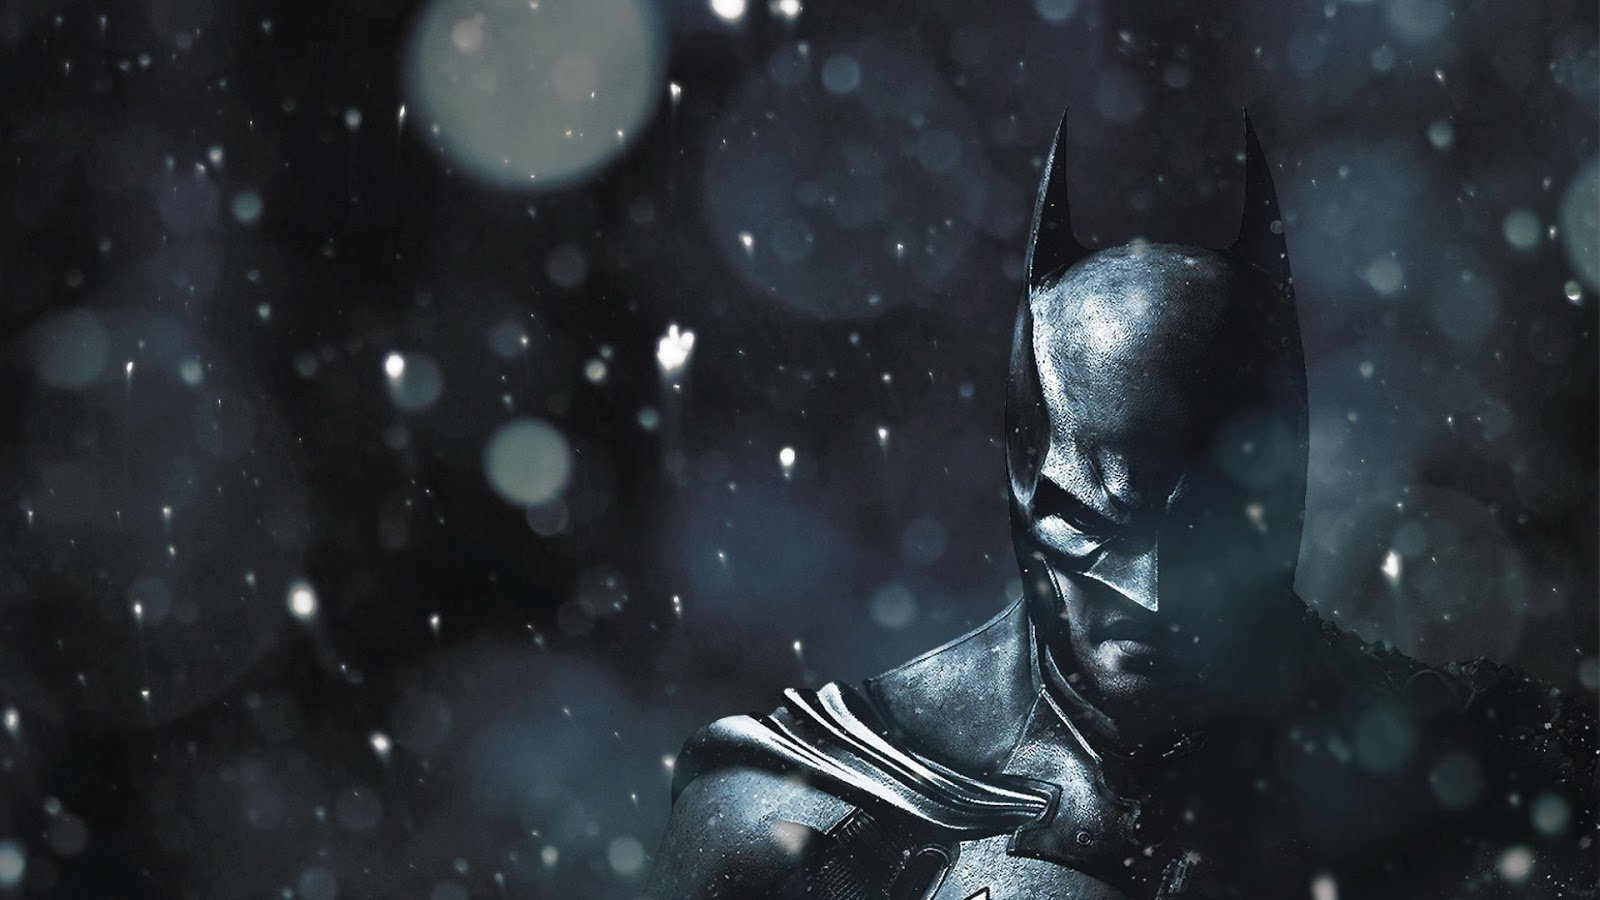 batman arkham origins hd wallpapers « GamingBolt